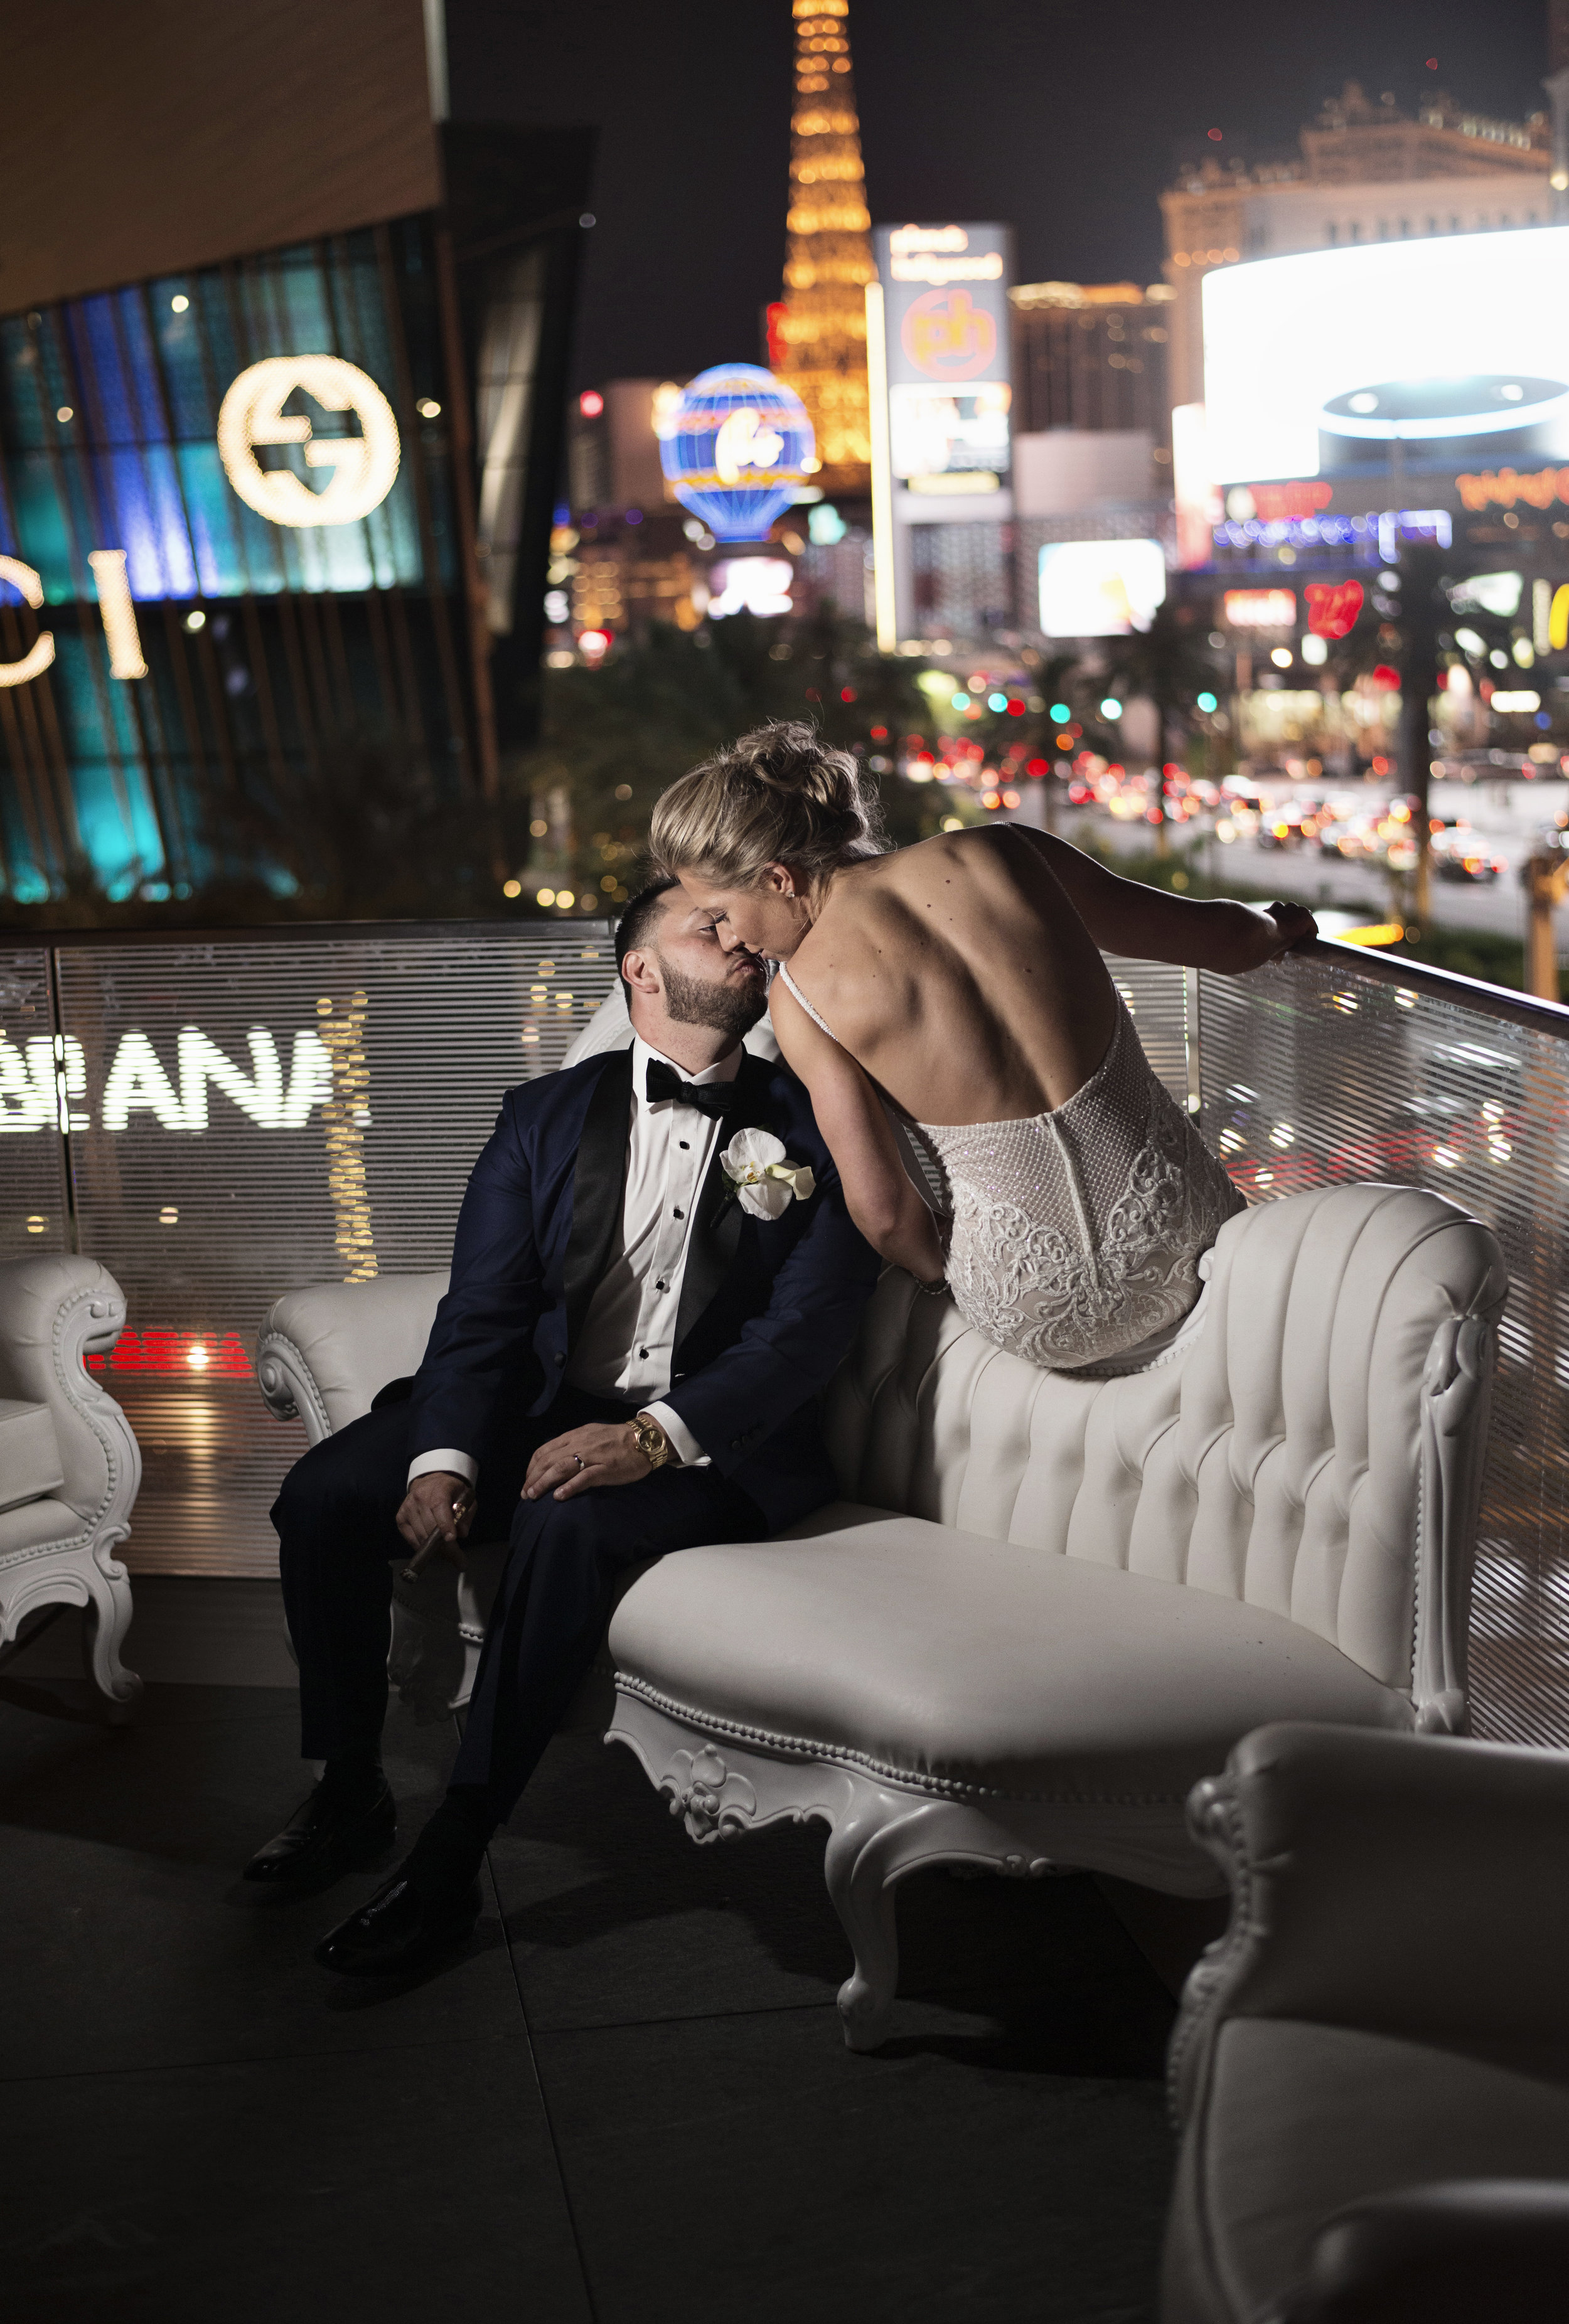 Bride & groom kiss on the balcony of The Mandarin Oriental.WEDDING PLANNING & EVENT DESIGN • Andrea Eppolito Events ,PHOTOGRAPHY • AltF Photography ,FLORAL AND DECOR DESIGN & PRODUCTION • Destinations by Design , CATERING • Mandarin Oriental Las Vegas , COCKTAILS •  The Grand Bevy , WEDDING GOWN •  Galia Lahav ,SHOES •  Jimmy Choo , ACRYLIC MENUS & SEATING CHART•  She Paperie